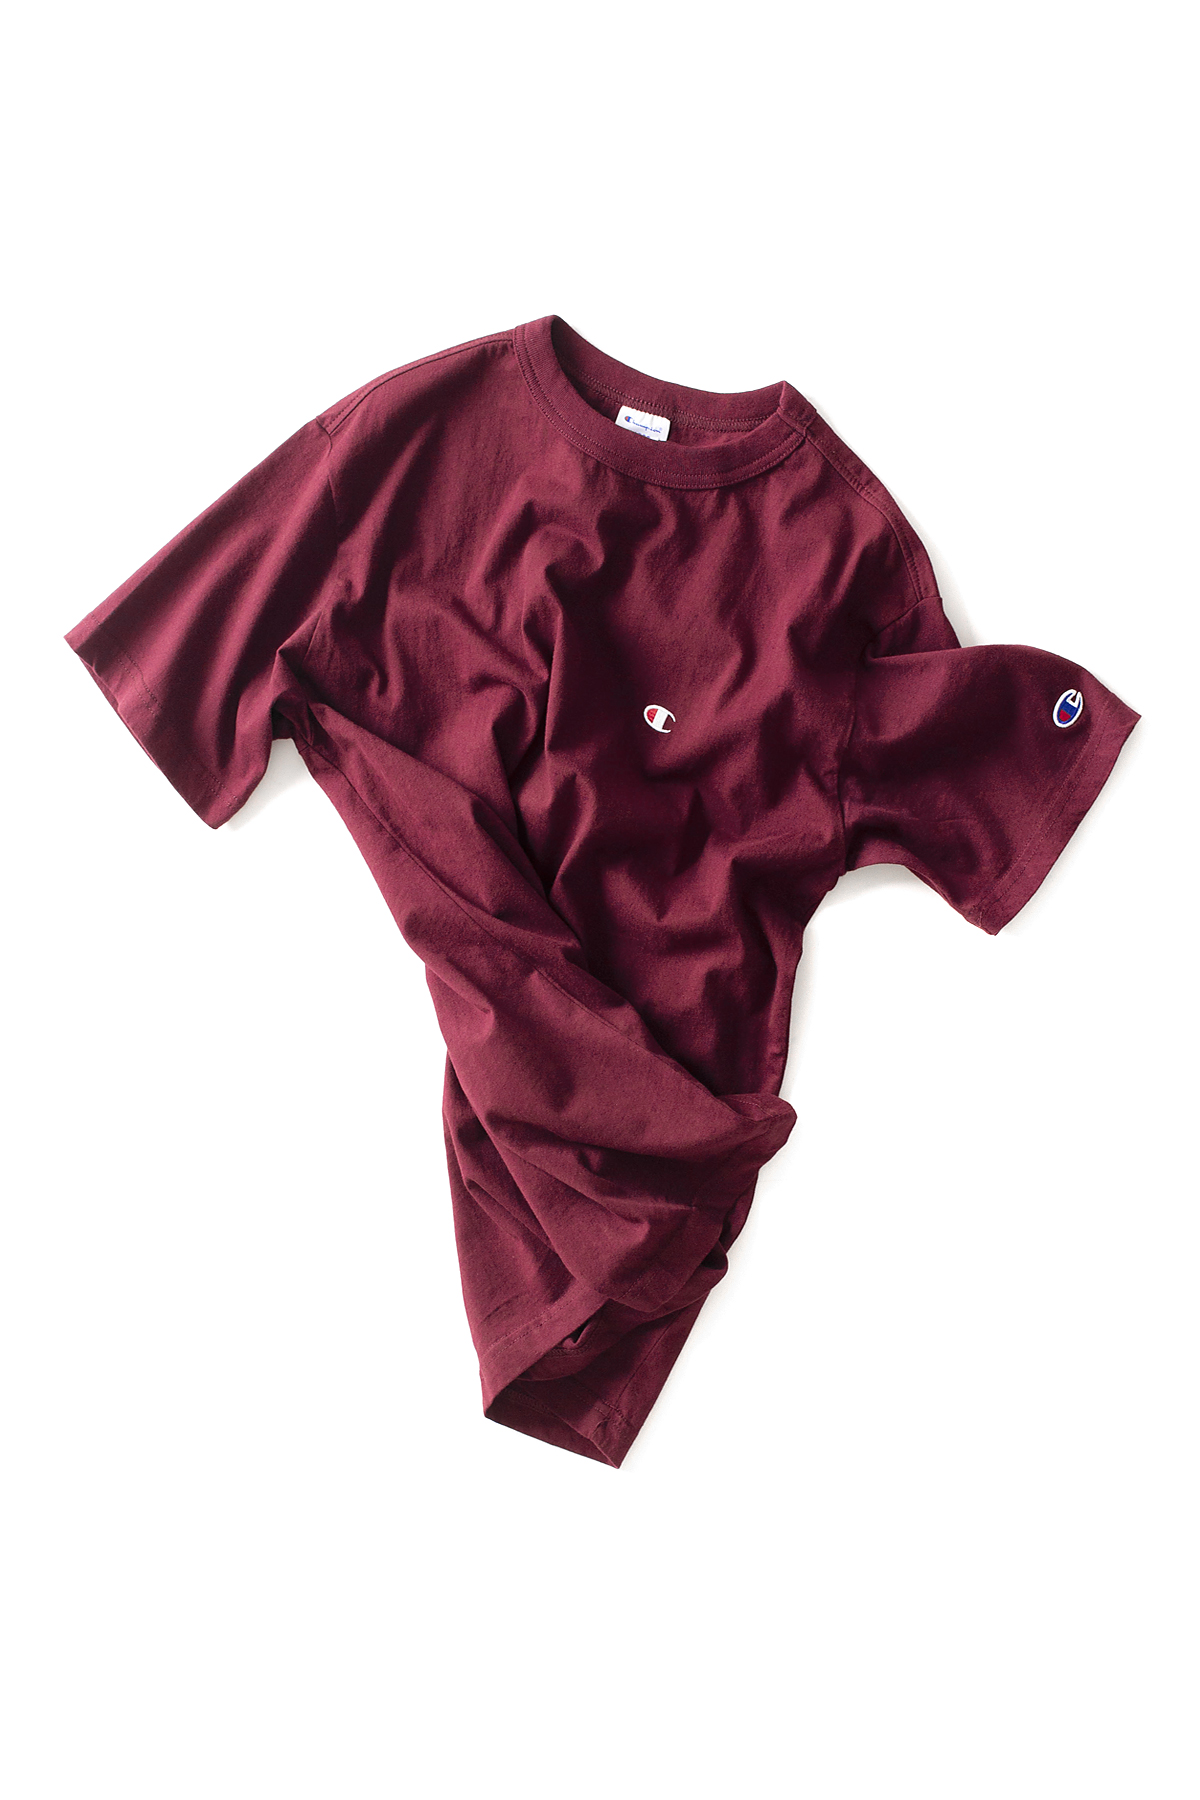 Champion : Basic T-Shirt (Maroon)